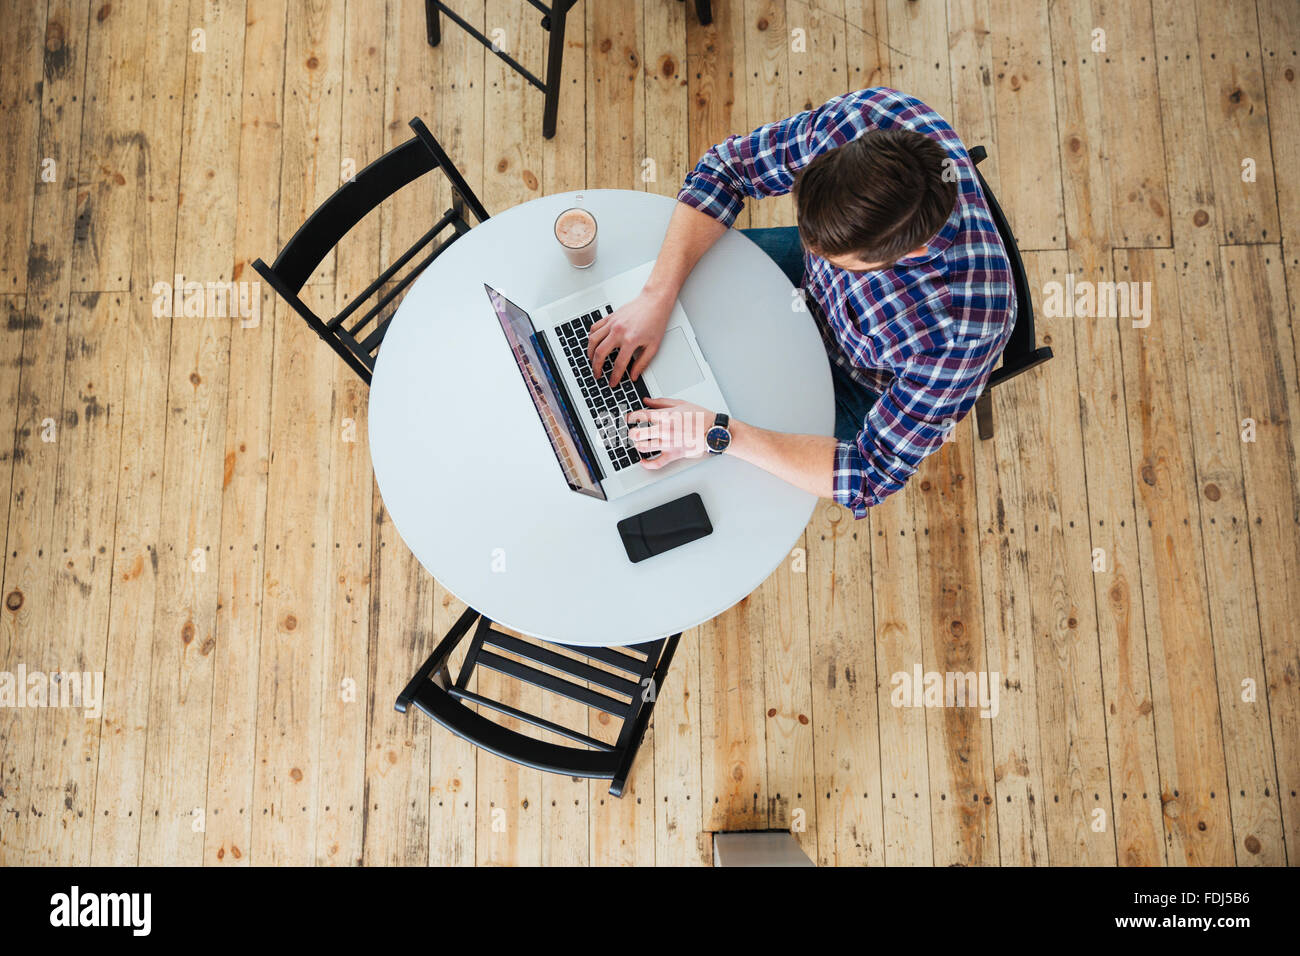 Top view portrait of a man using laptop computer in cafe - Stock Image